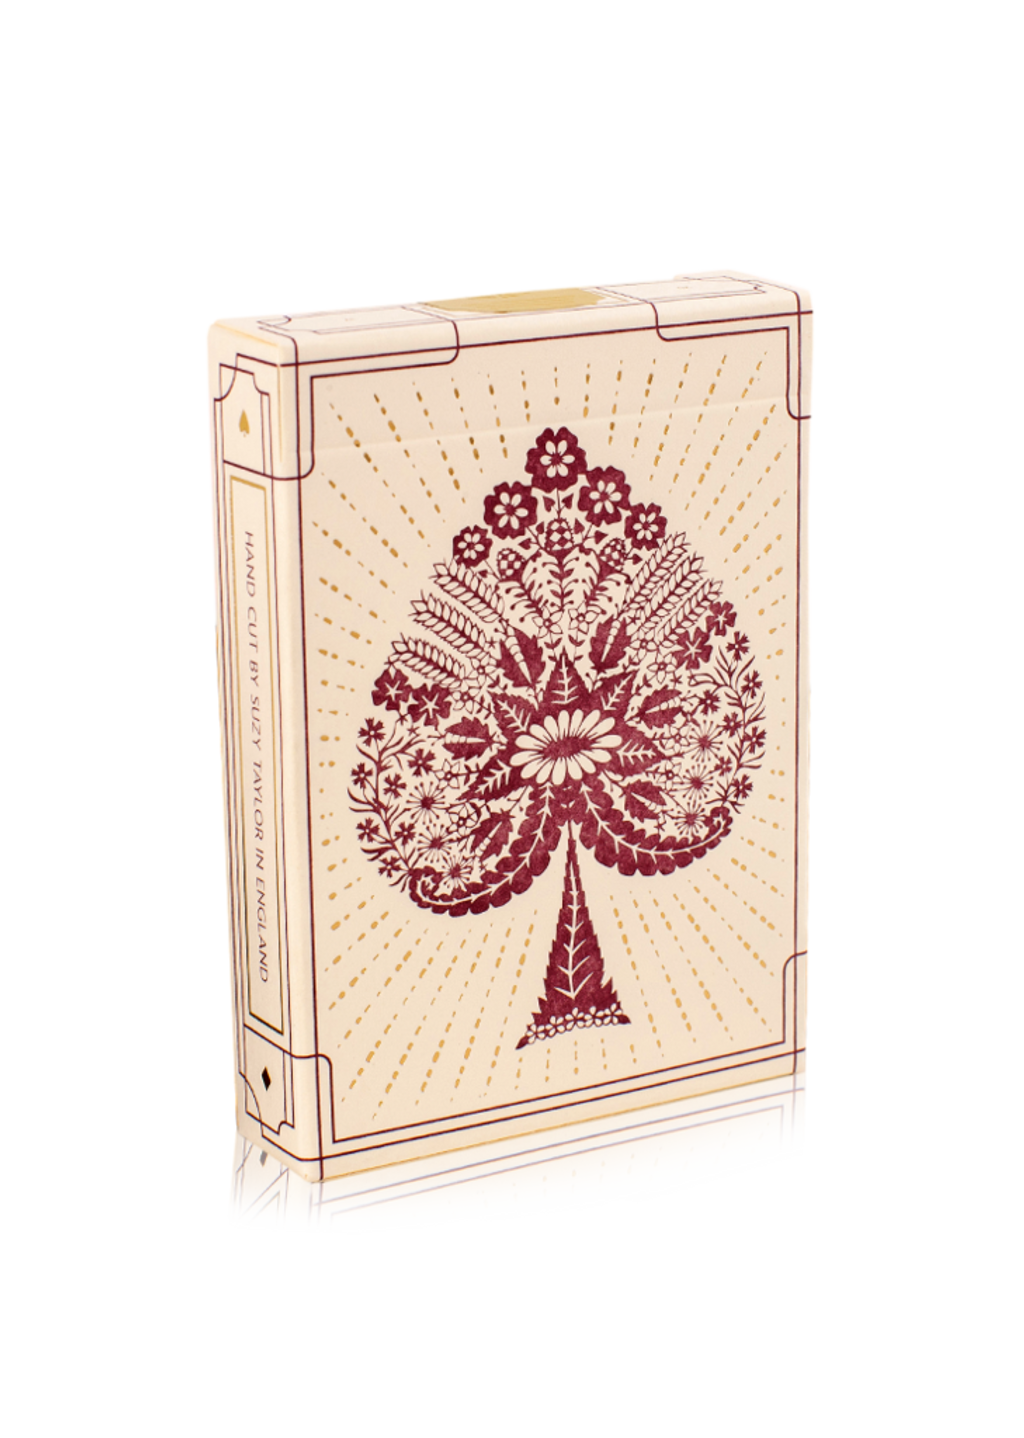 papercuts-playing-cards_1024x1024.png